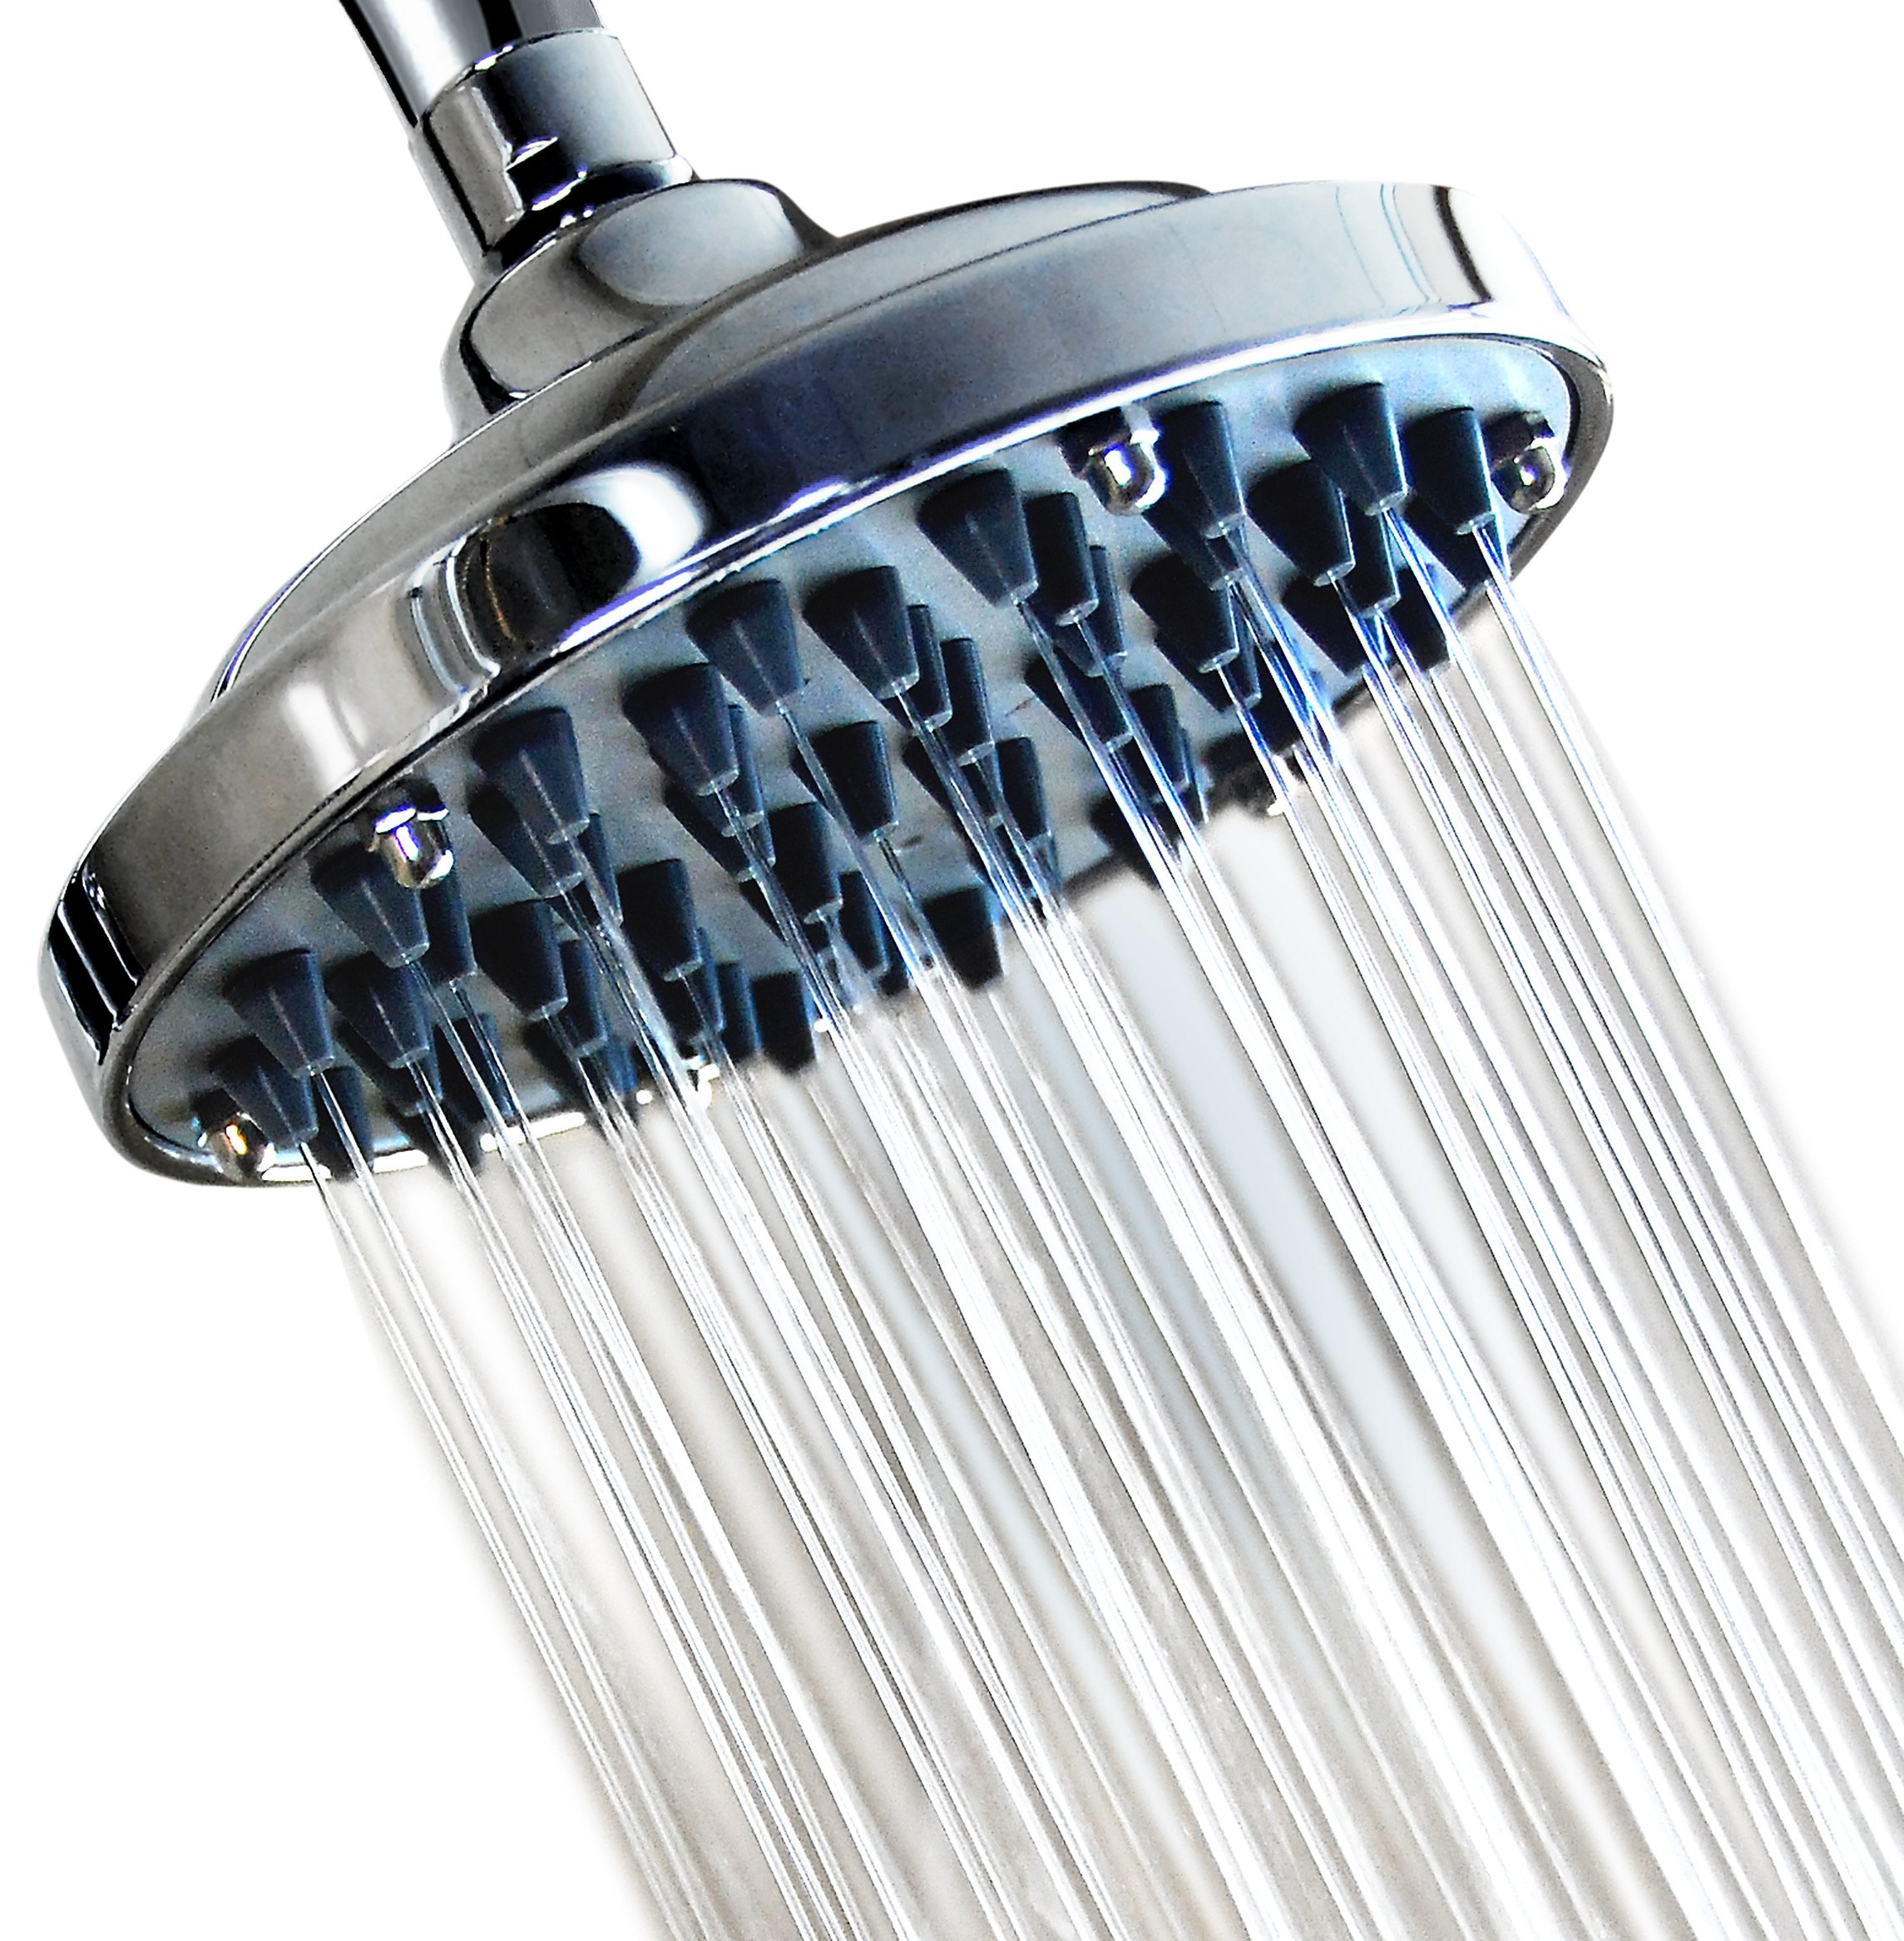 6 Inch High Pressure Rainfall Massage Shower Head - Disassembled Clean Nozzles - Wall Mount - Bathroom Showerhead Low Flow Showers - Chrome - Removable Water Restrictor - Adjustable Metal Swivel Ball by WantBa